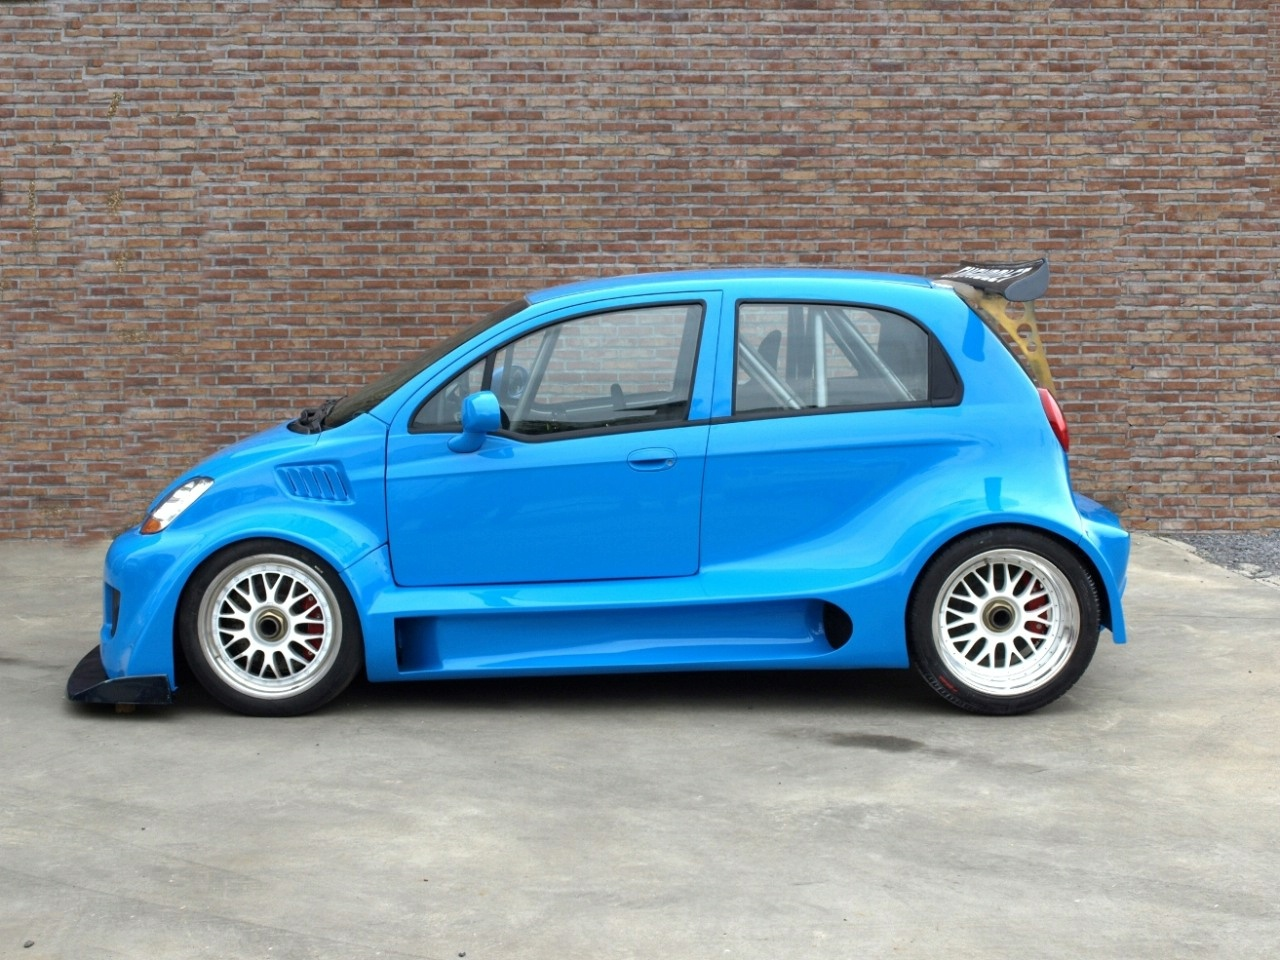 beast chevrolet matiz with 505hp v8 engine it s your auto world new cars auto news. Black Bedroom Furniture Sets. Home Design Ideas